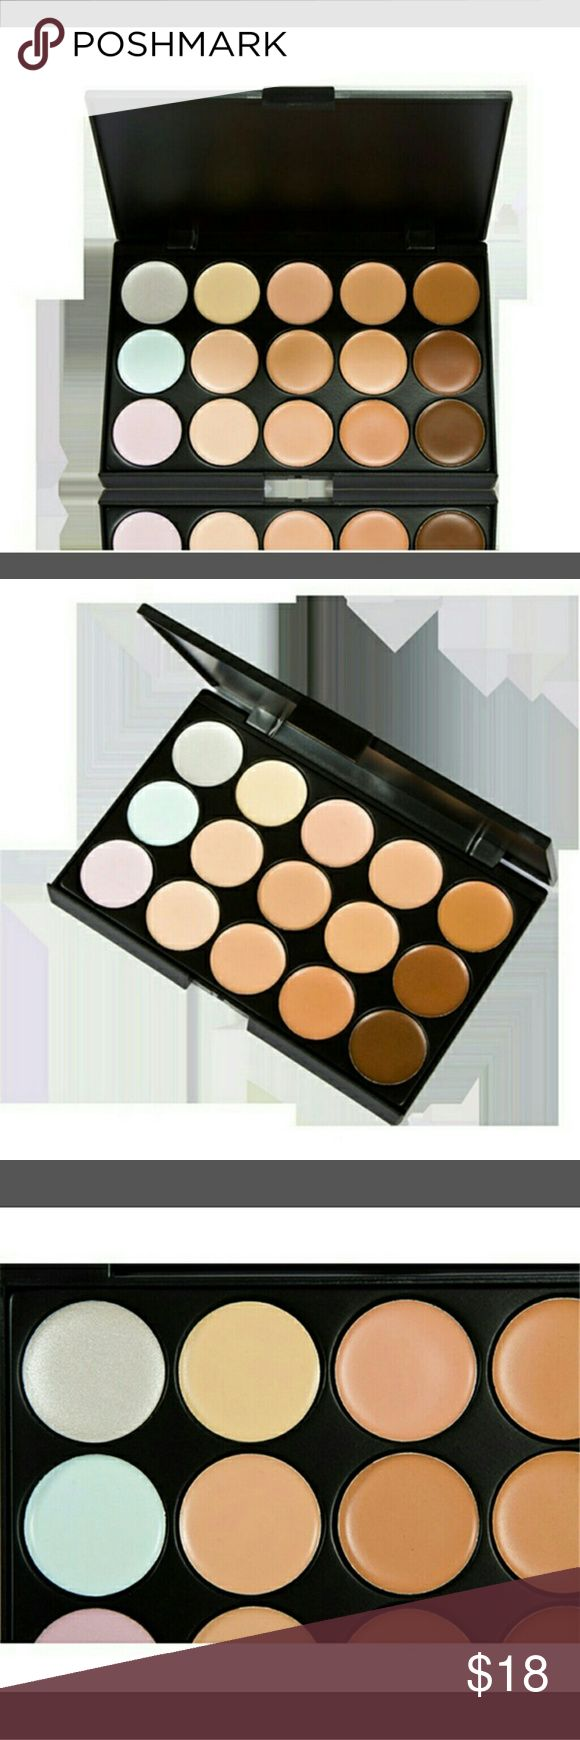 ??NEW?? 15 COLOR CONTOUR PALETTE! All in one contour palette with 15 colors.  Colors are well pigmented.  Tones range from highlighters to deep contour colors for bold cheekbones, instant lifts and contouring.  Perfect kit for beginners to experienced. Makeup